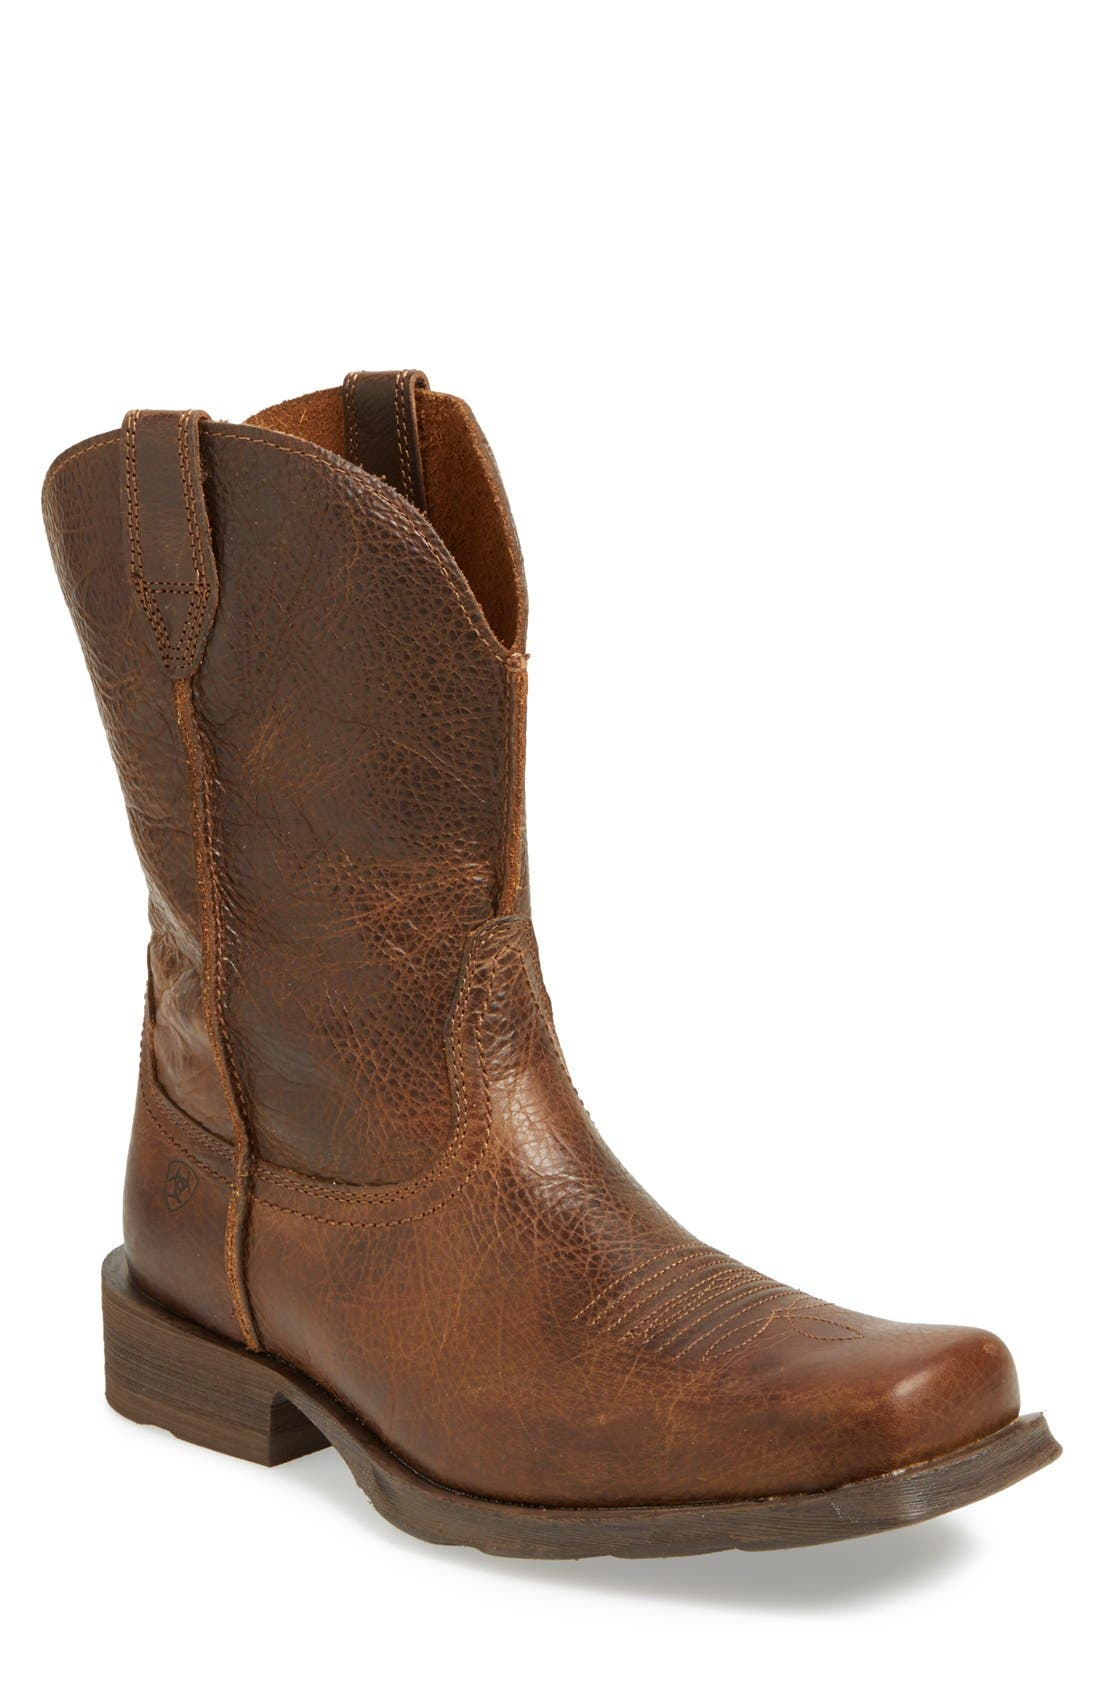 ARIAT, 'Rambler' Square Toe Leather Cowboy Boot, Main thumbnail 1, color, 200